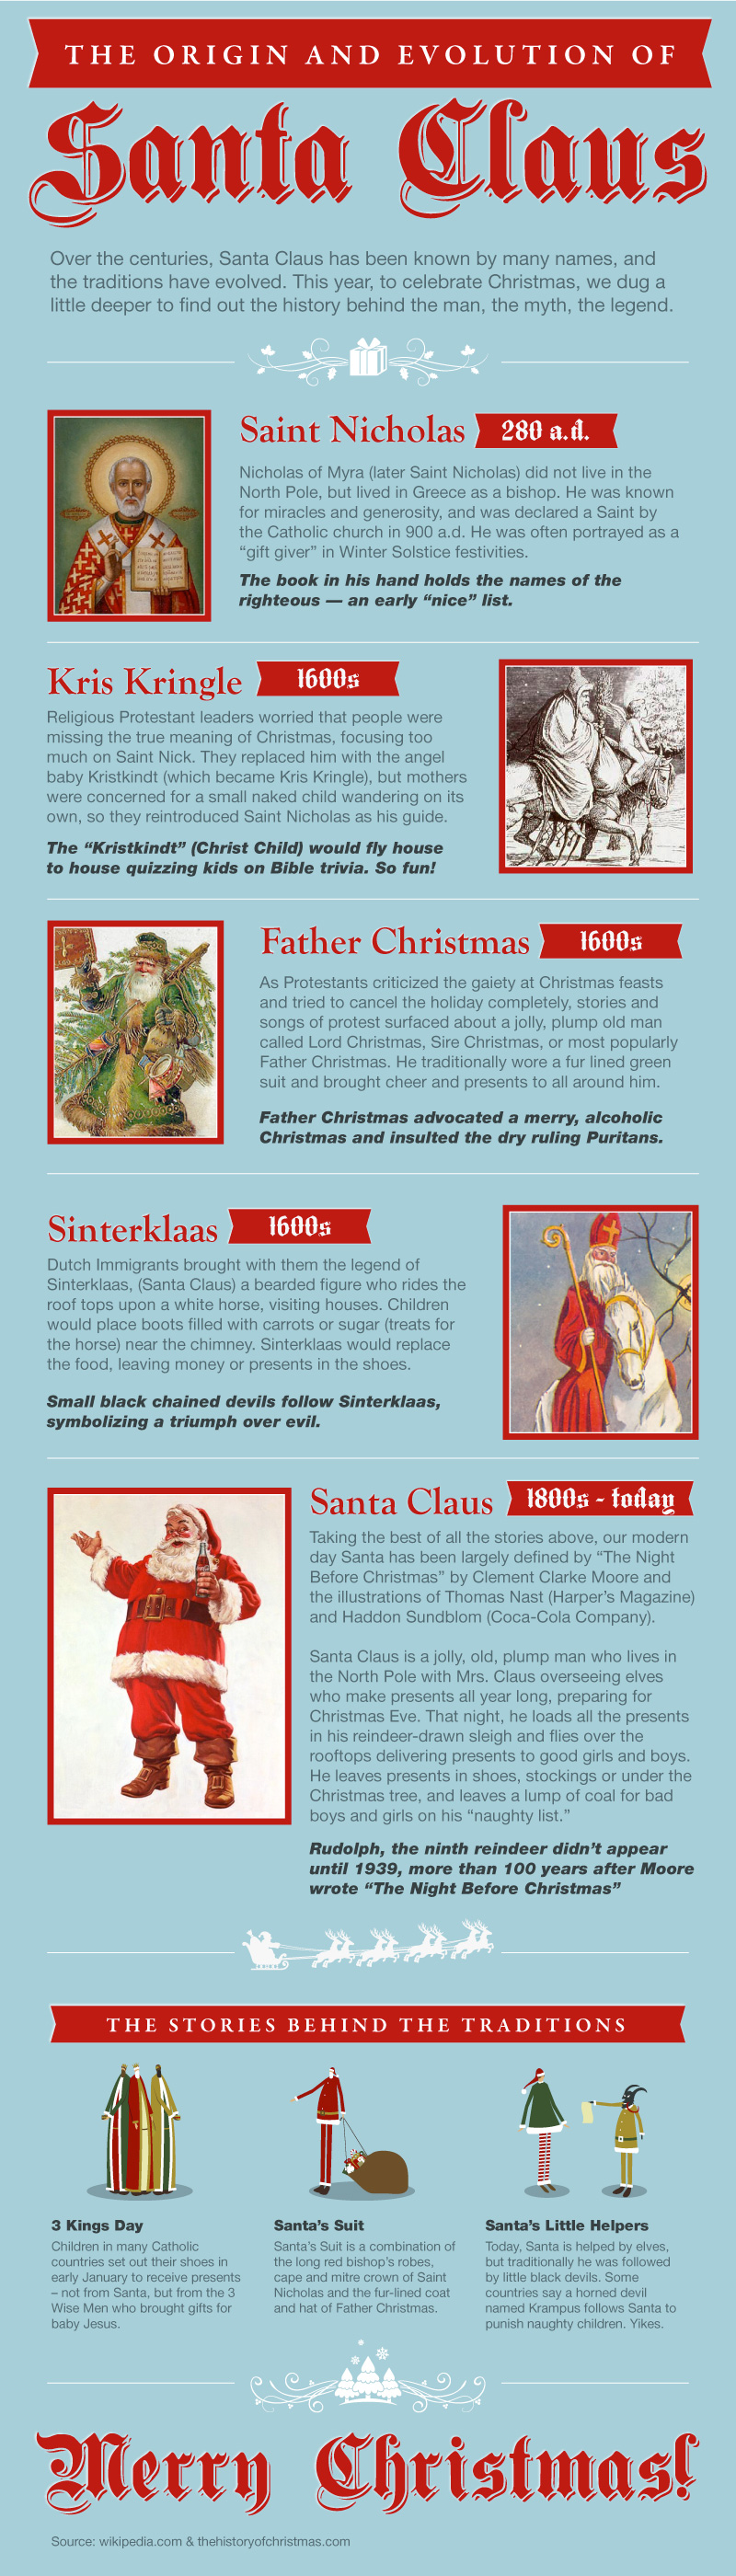 The Origin of Santa Claus